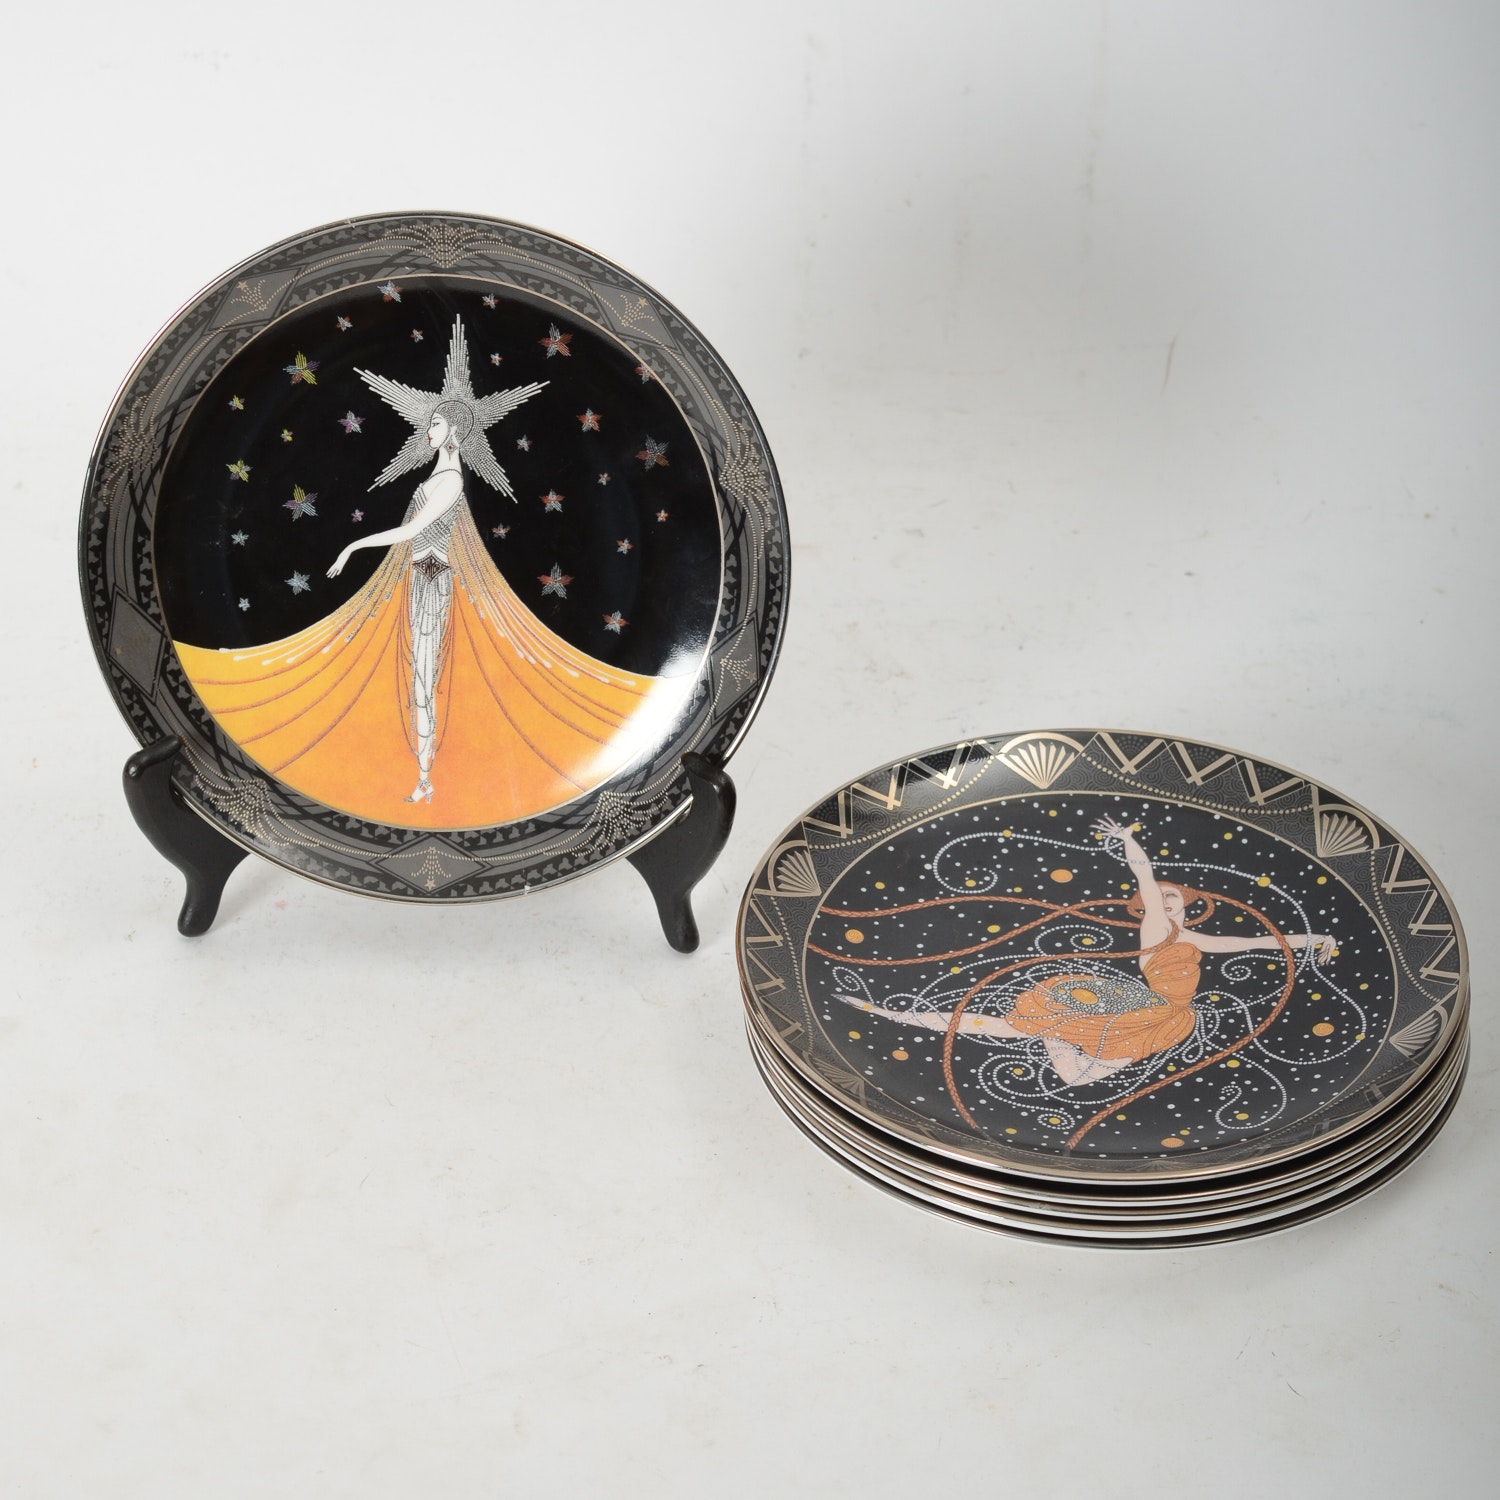 """Limited Edition """"House of Erté"""" Plates by Royal Doulton"""